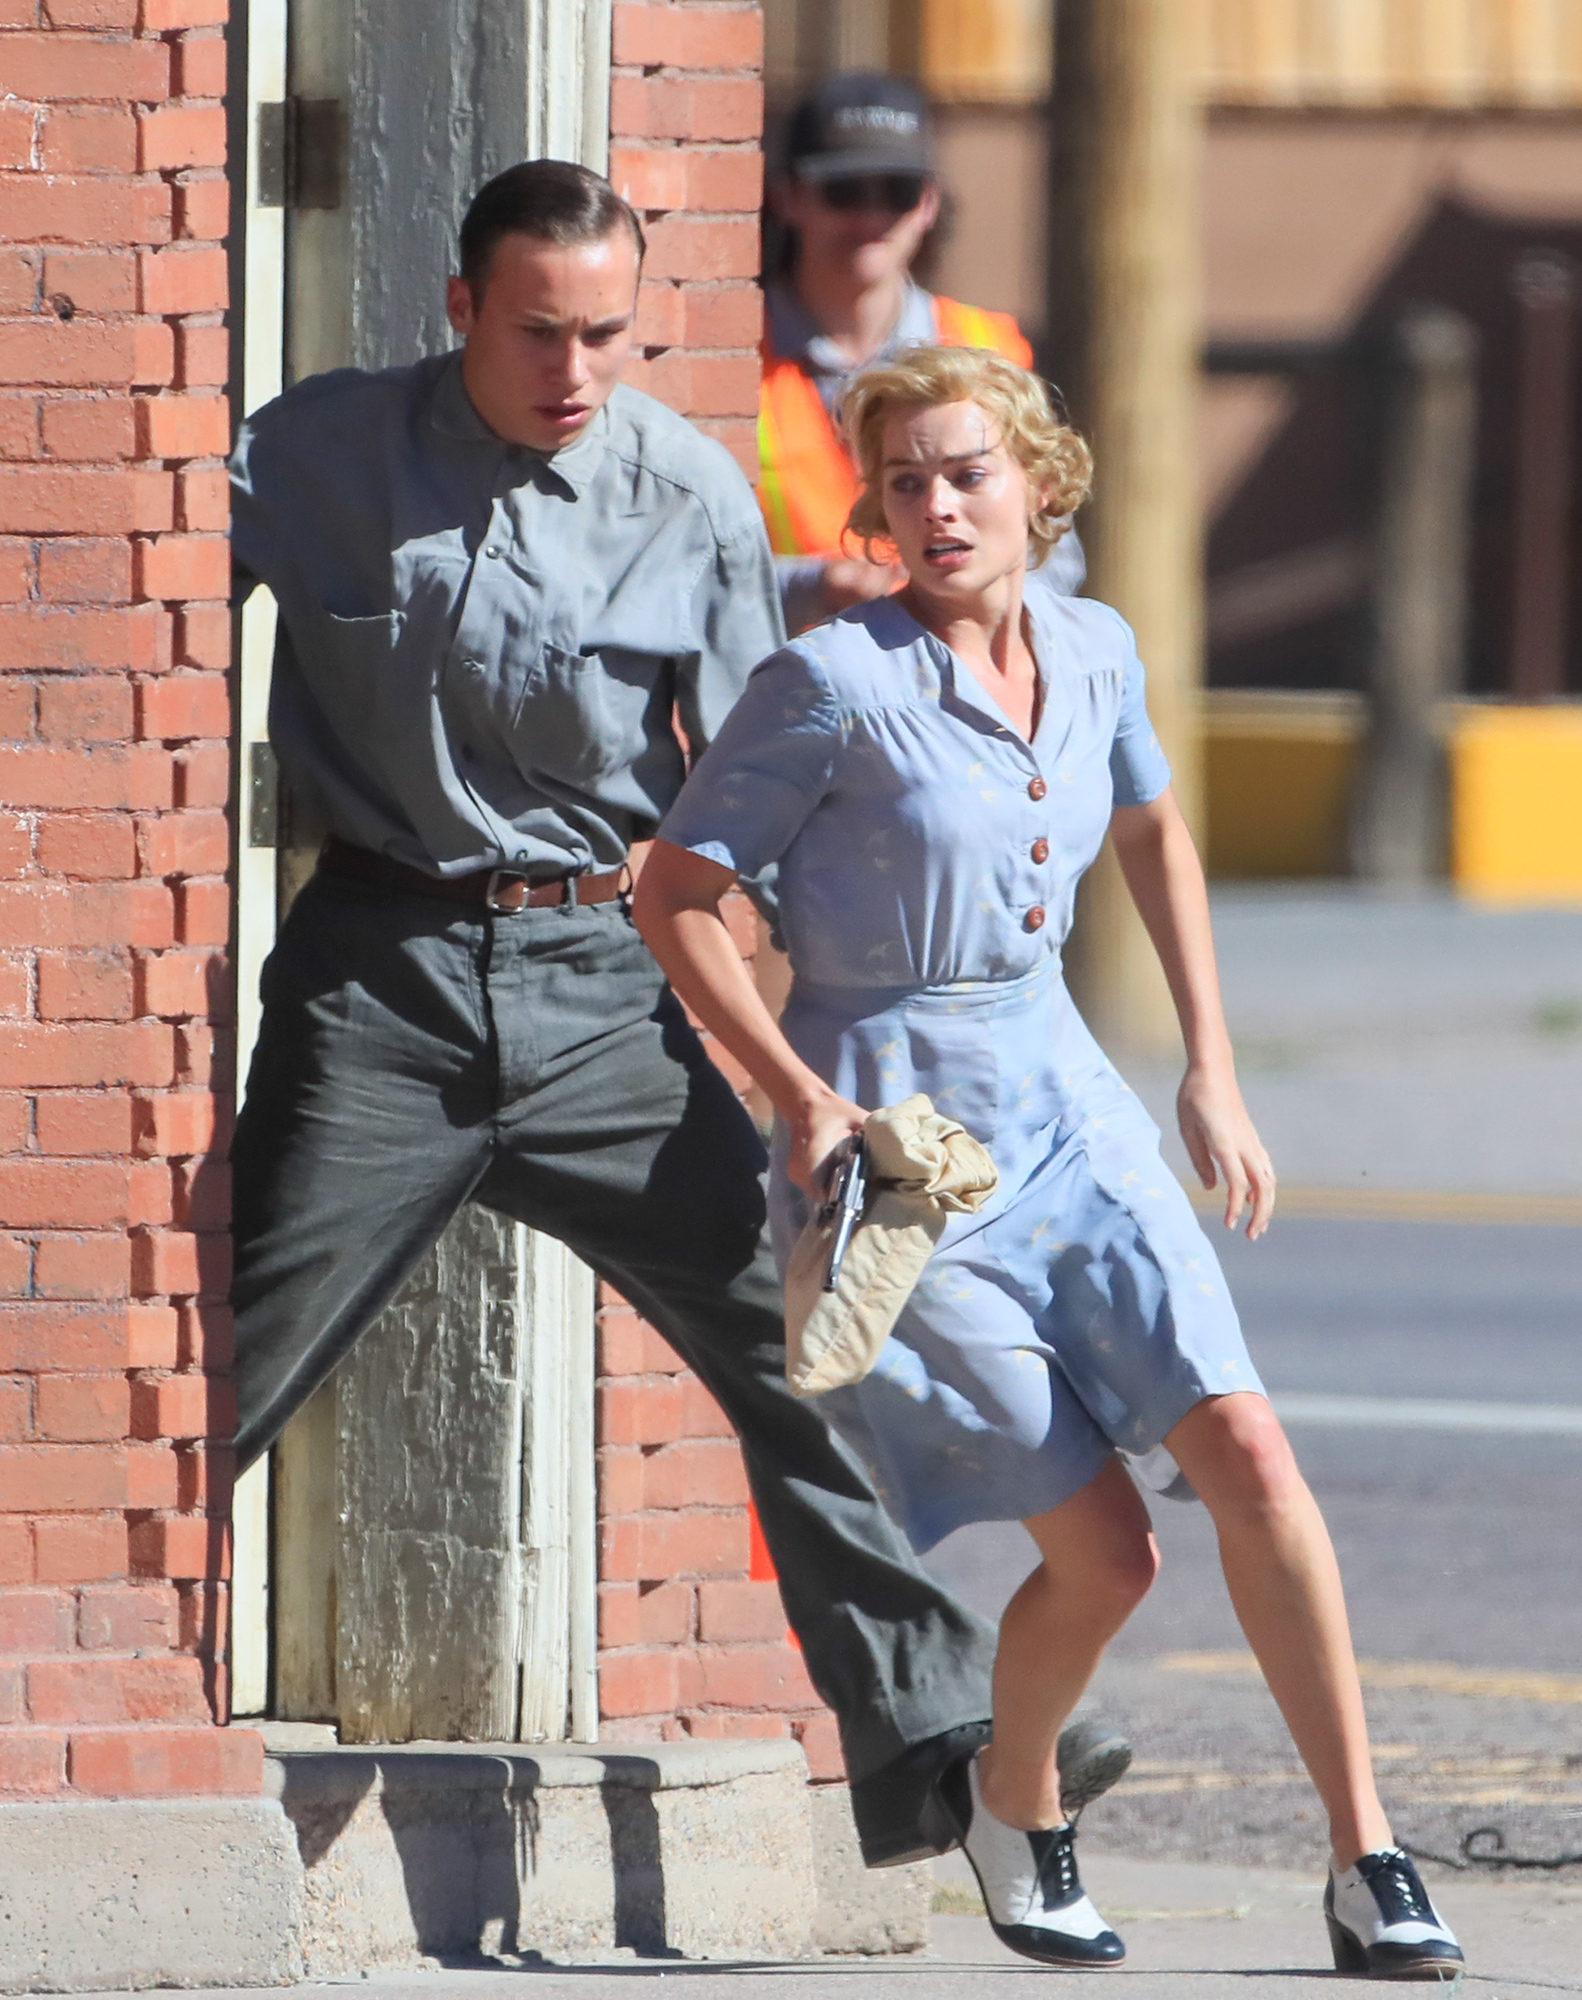 EXCLUSIVE: Margot Robbie and Finn Cole Kiss During a Bank Heist Scene in New Mexico for 'Dreamland'